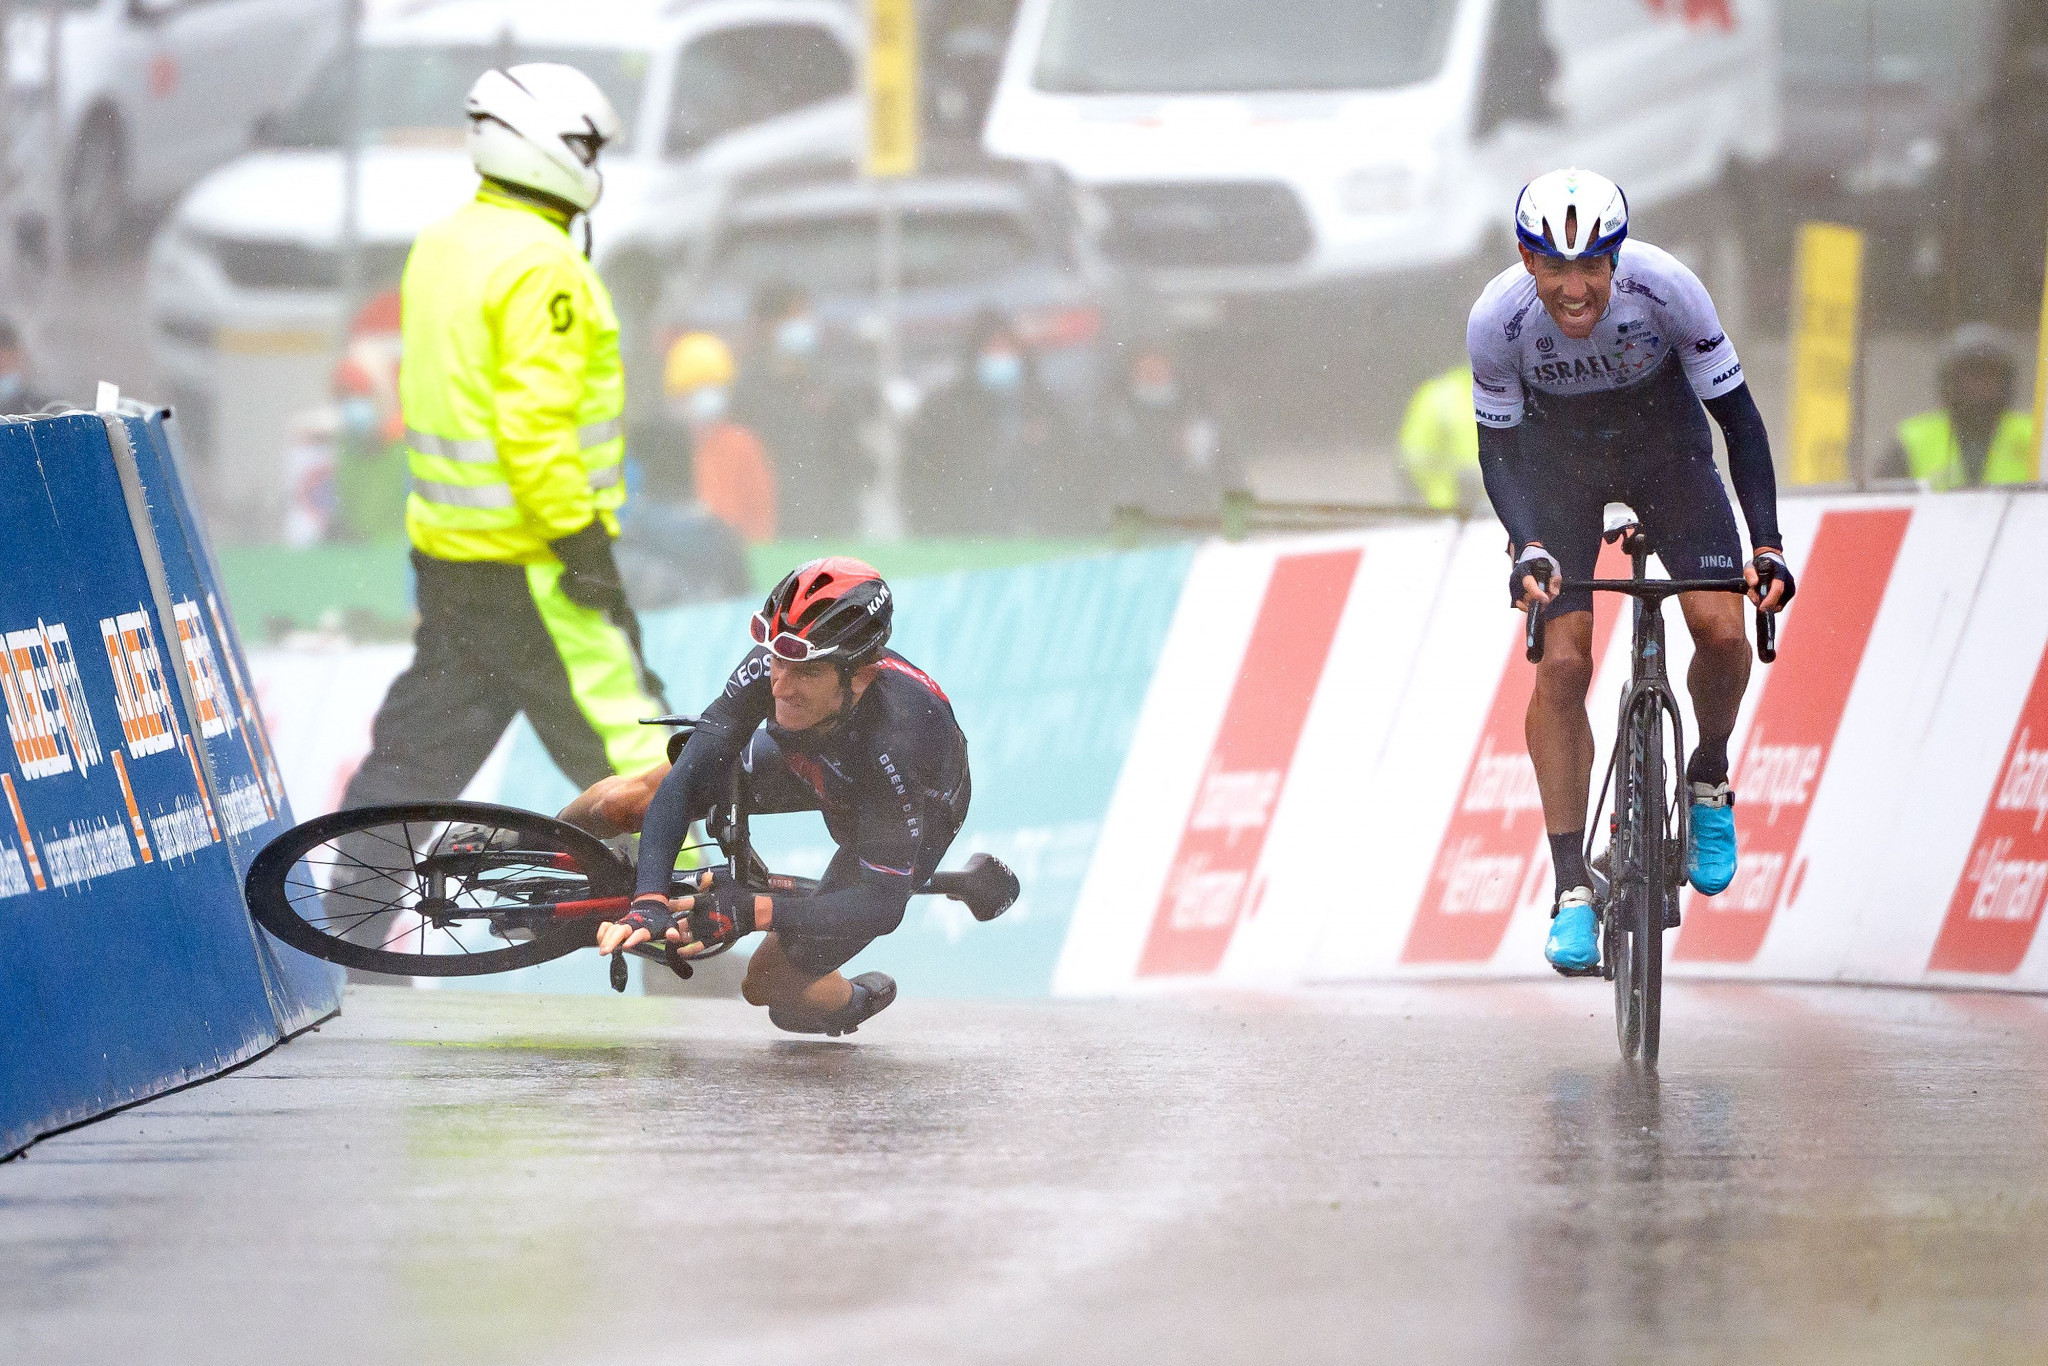 Woods earns Tour de Romandie stage win and race lead as Thomas crashes in final kilometre